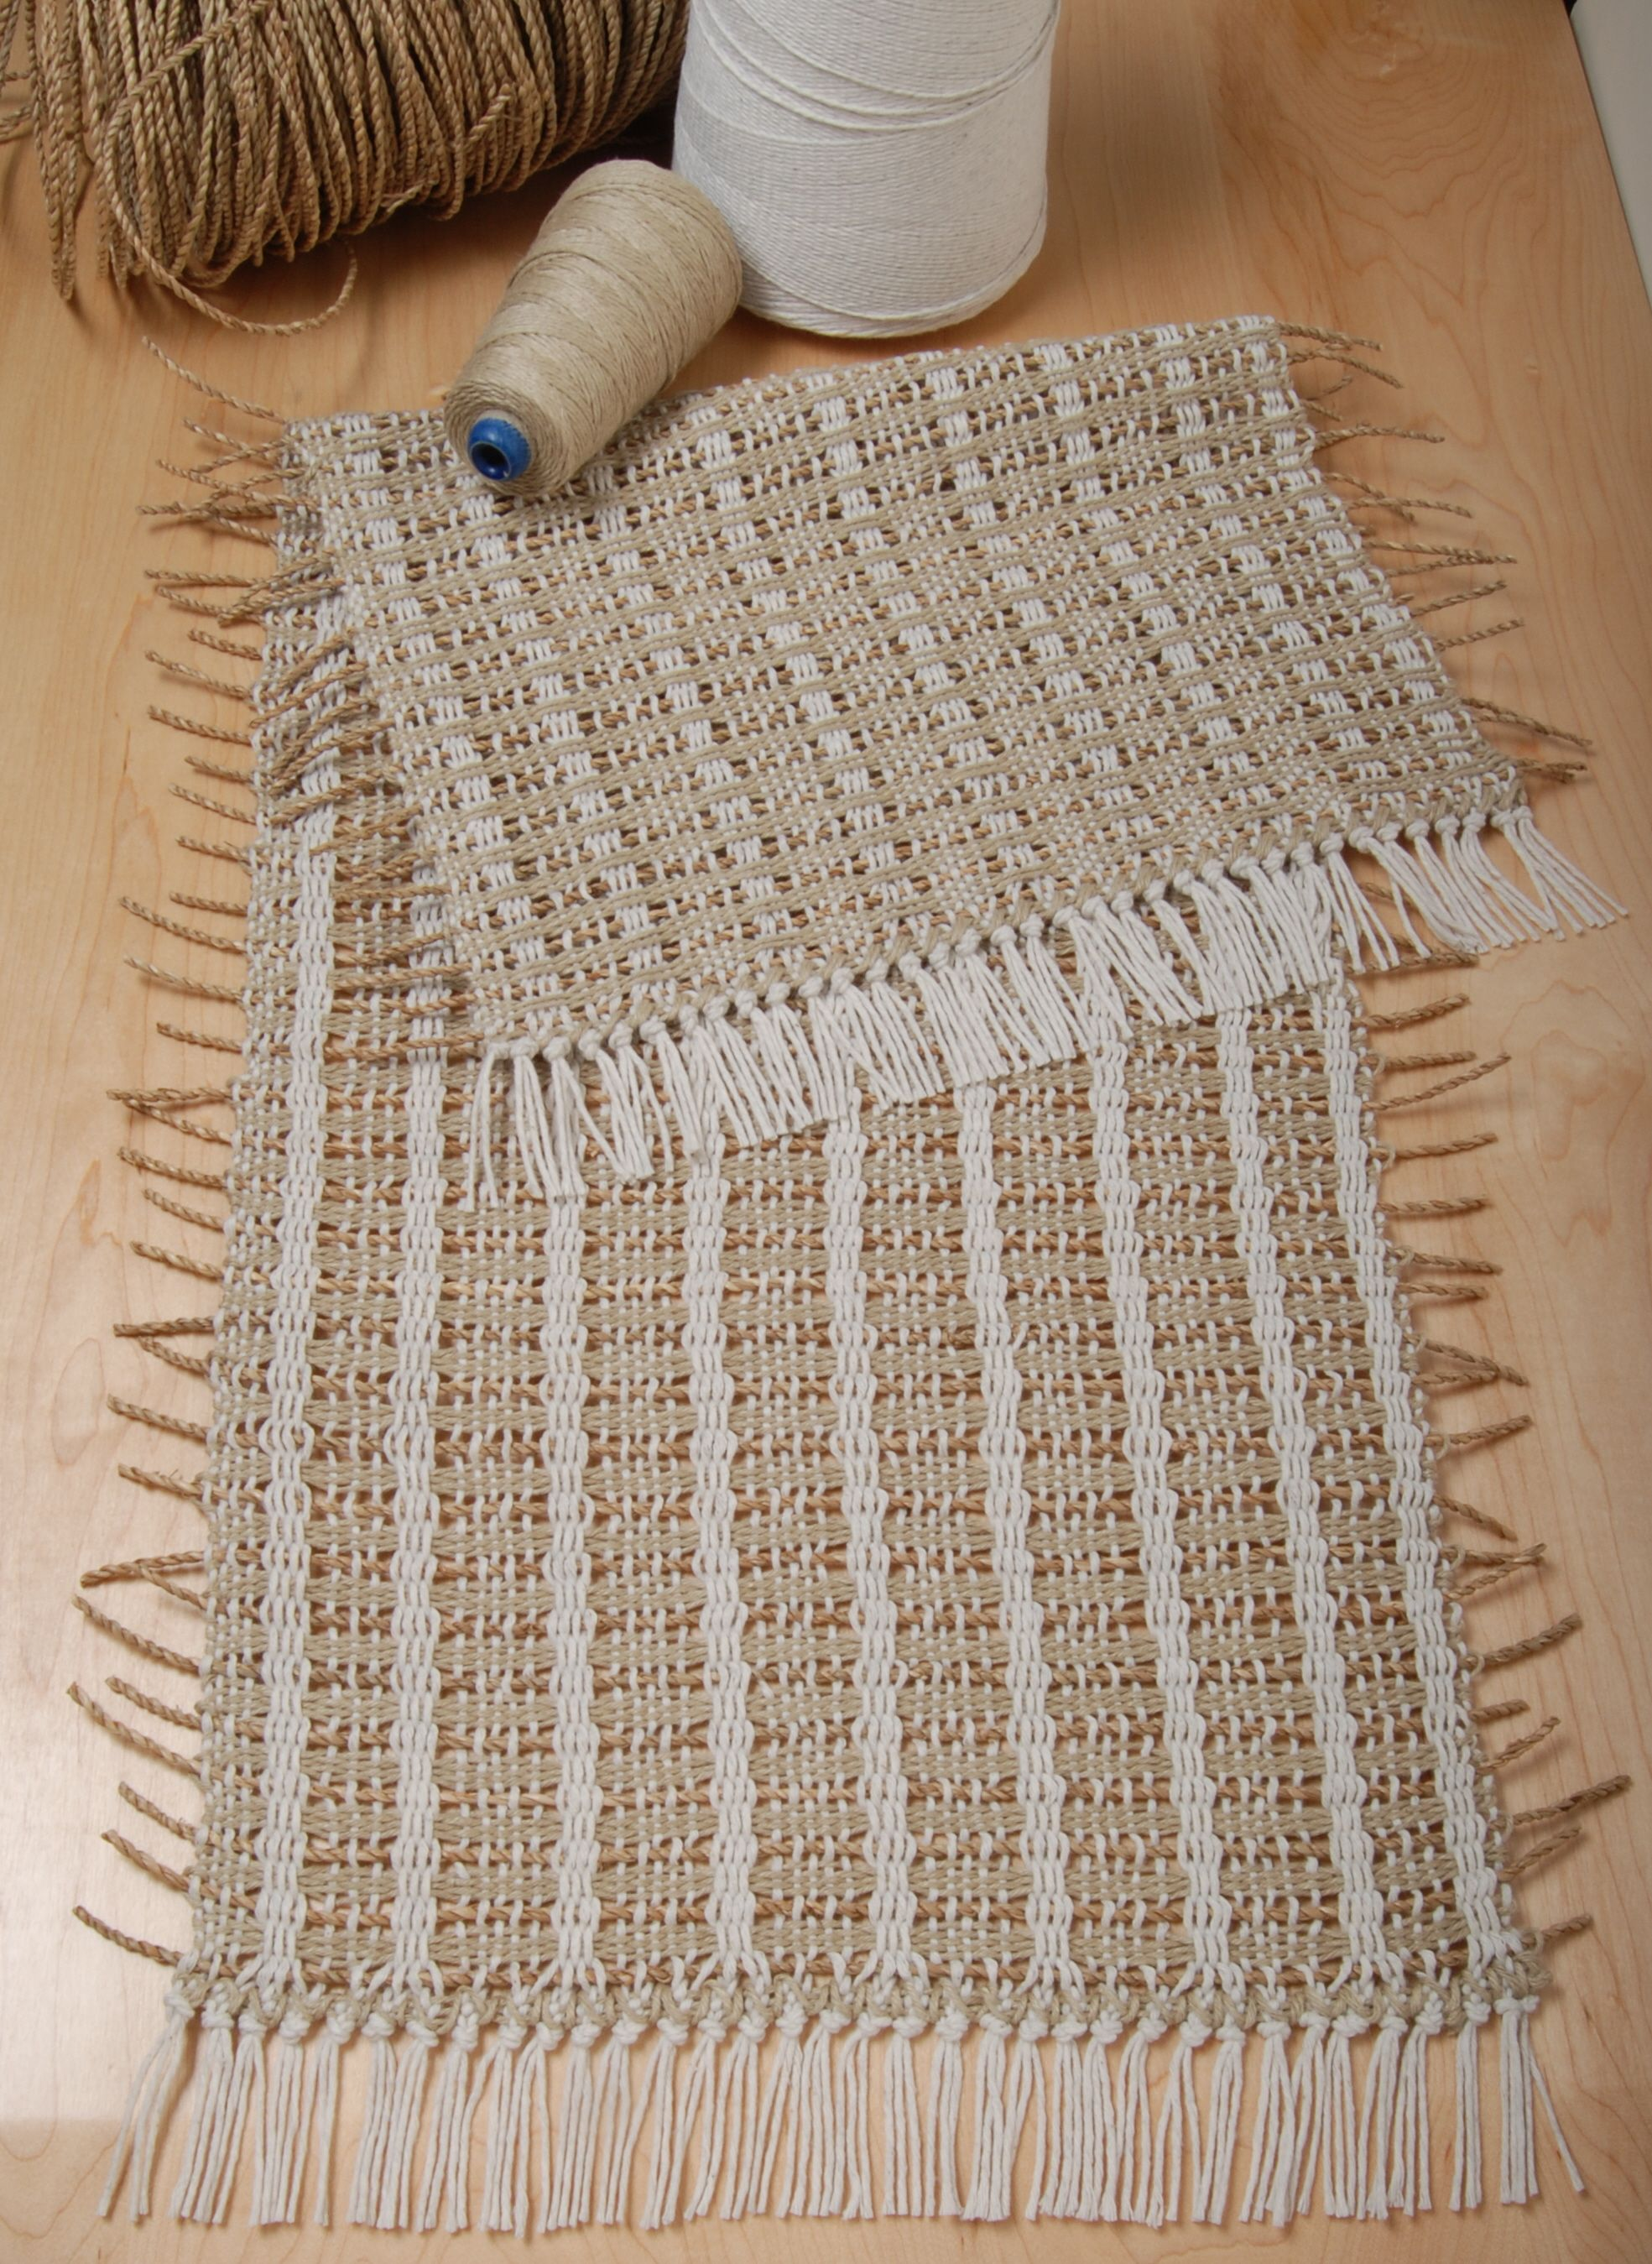 Weave This Lovely Nautical Themed Table Runner For Your Home